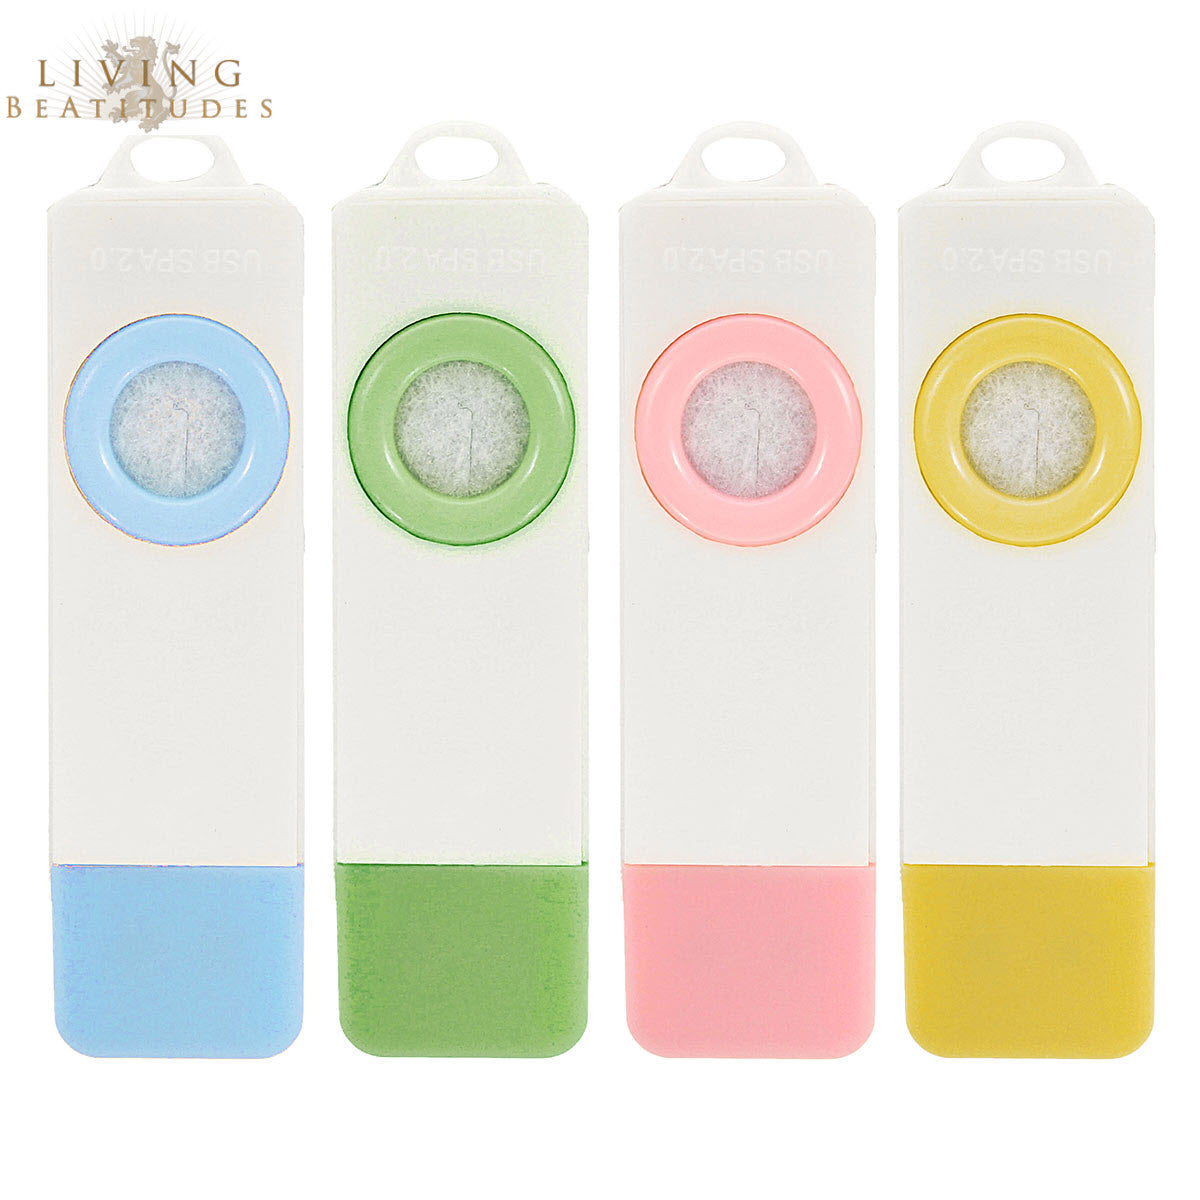 Mini USB Aromatherapy Diffuser for Car Office Home